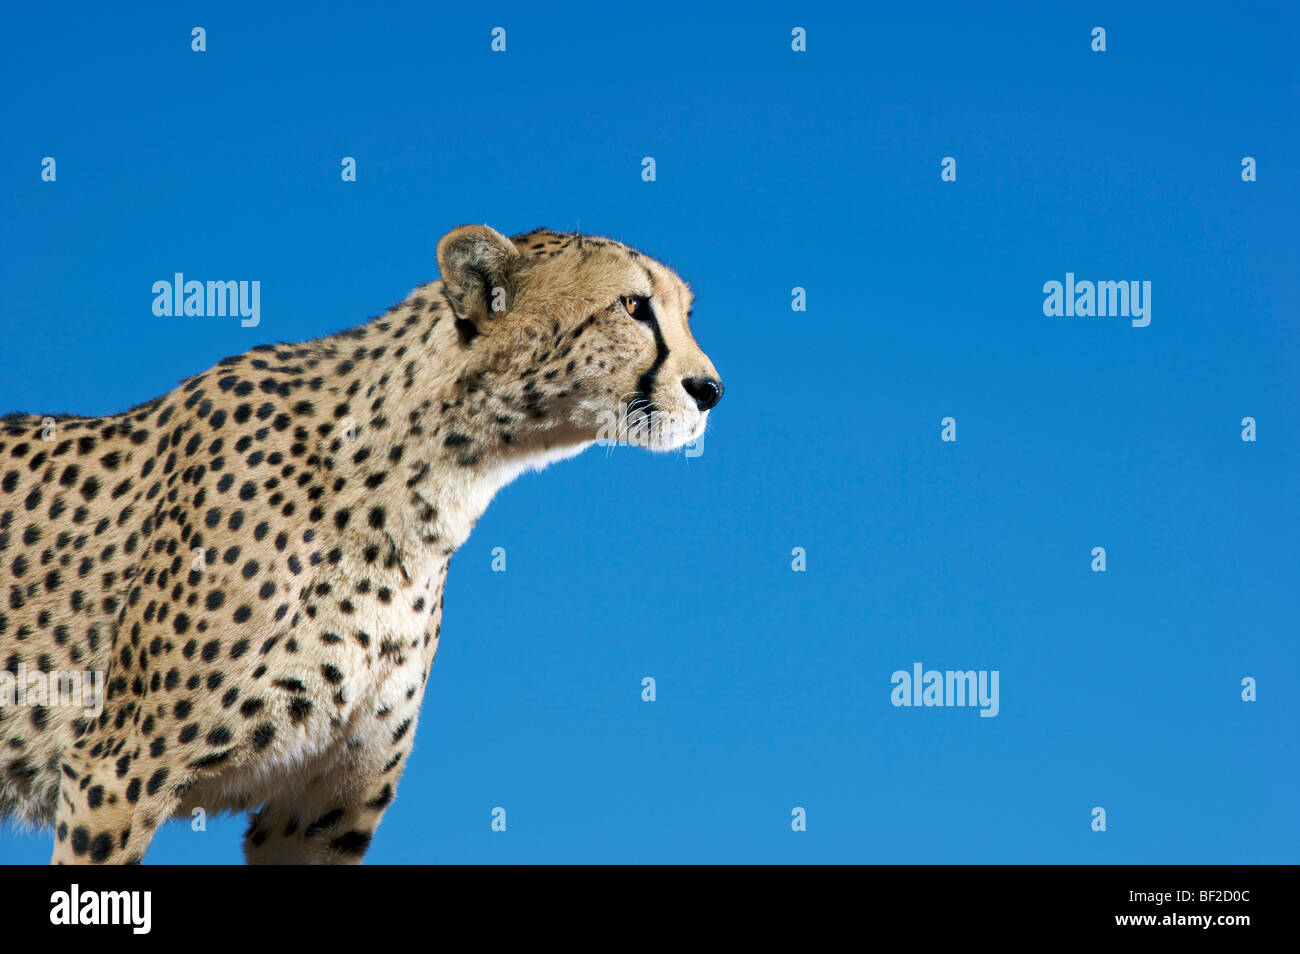 Profile view of a cheetah (Acinonyx jubatus), (Acinonyx jubatus), Na'an ku se Wild Life Sanctuary, Namibia. - Stock Image